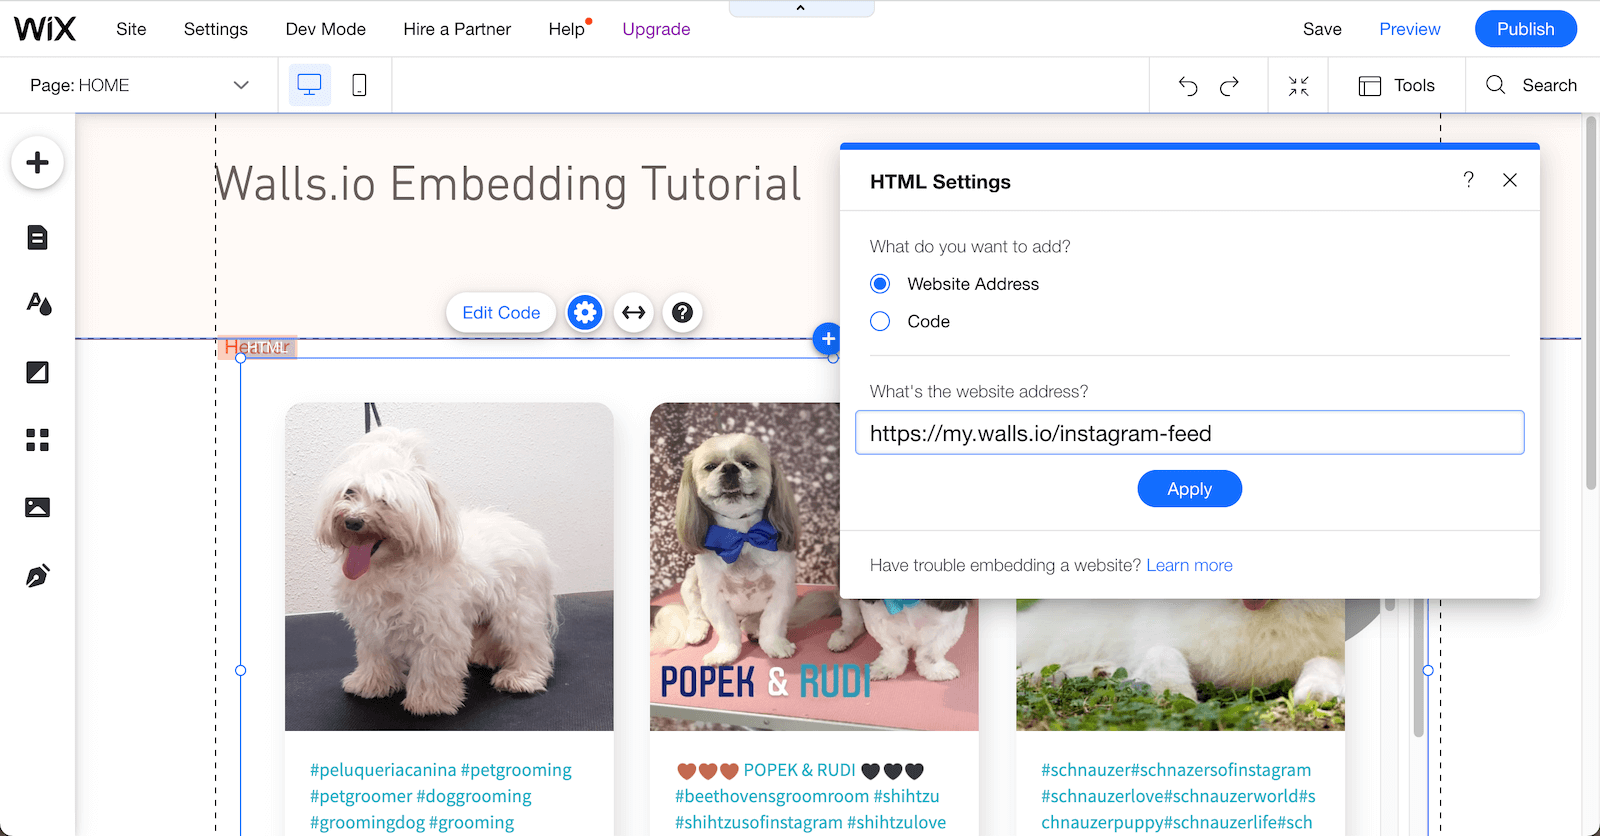 Another screenshot showing how to embed a social wall on a Wix page, this time using the Walls.io URL instead of the embed code. The social wall with dog pics is already populated on the page.